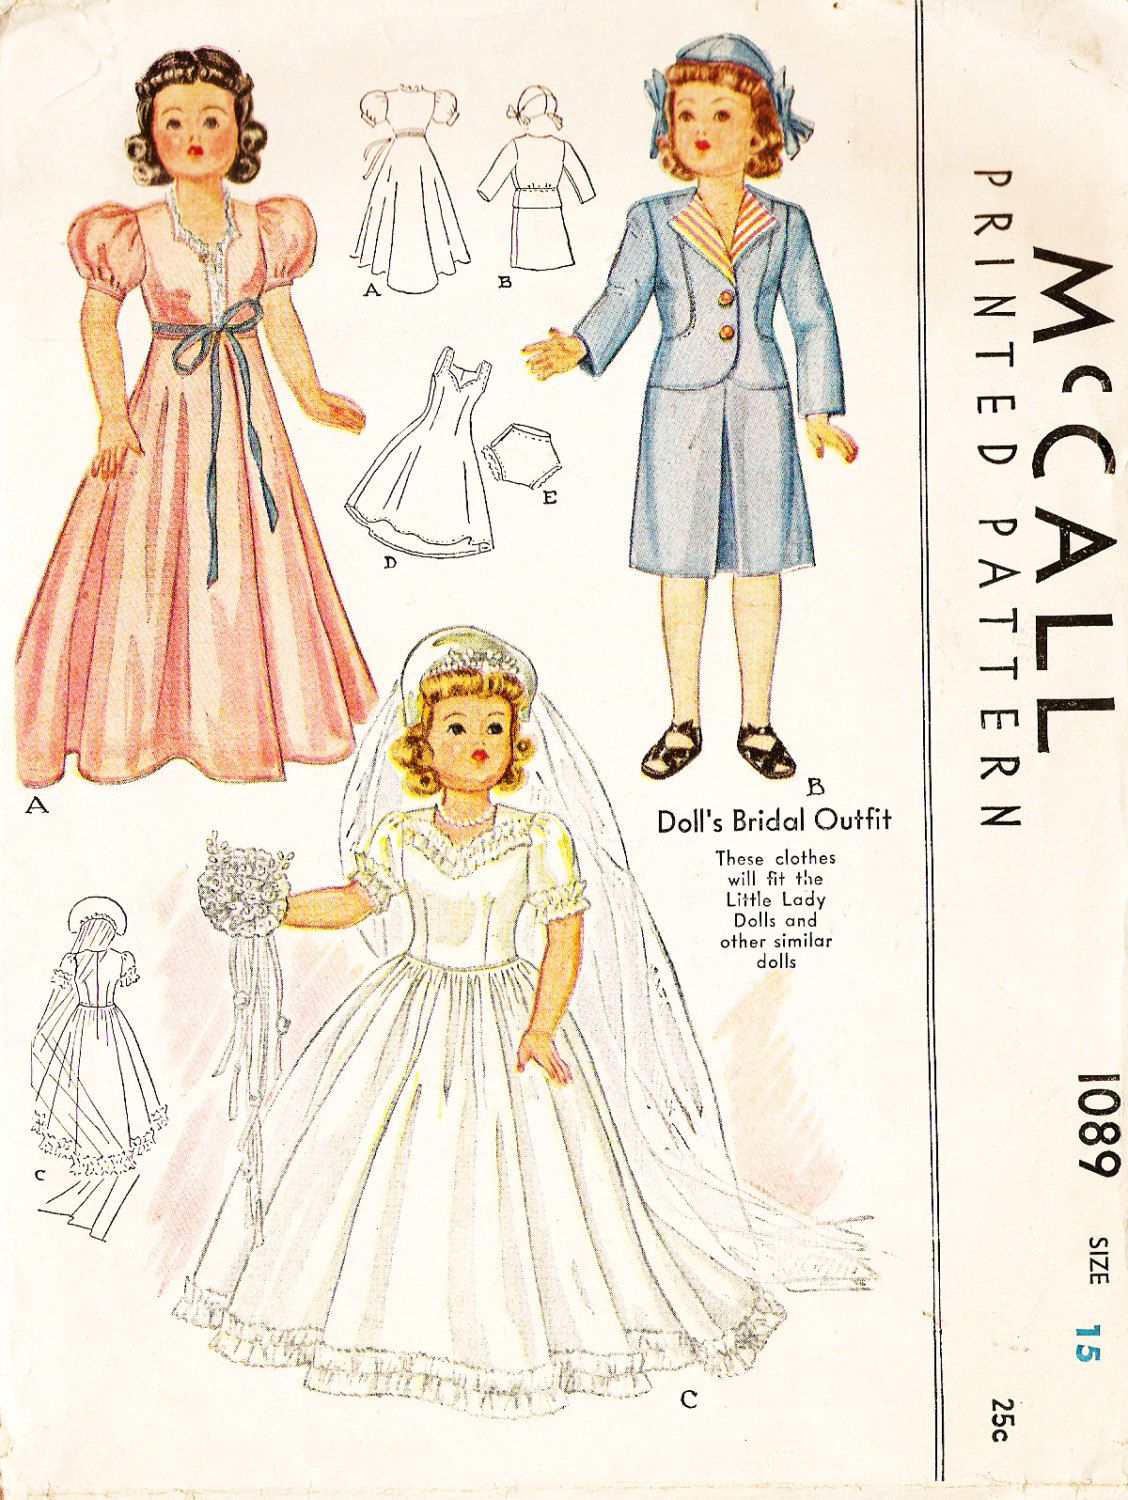 McCall 1089 Vintage 1940s 15 Inch Doll Wedding Gown, Negligee and Skirt Suit Sewing Pattern by DRCRosePatterns on Etsy